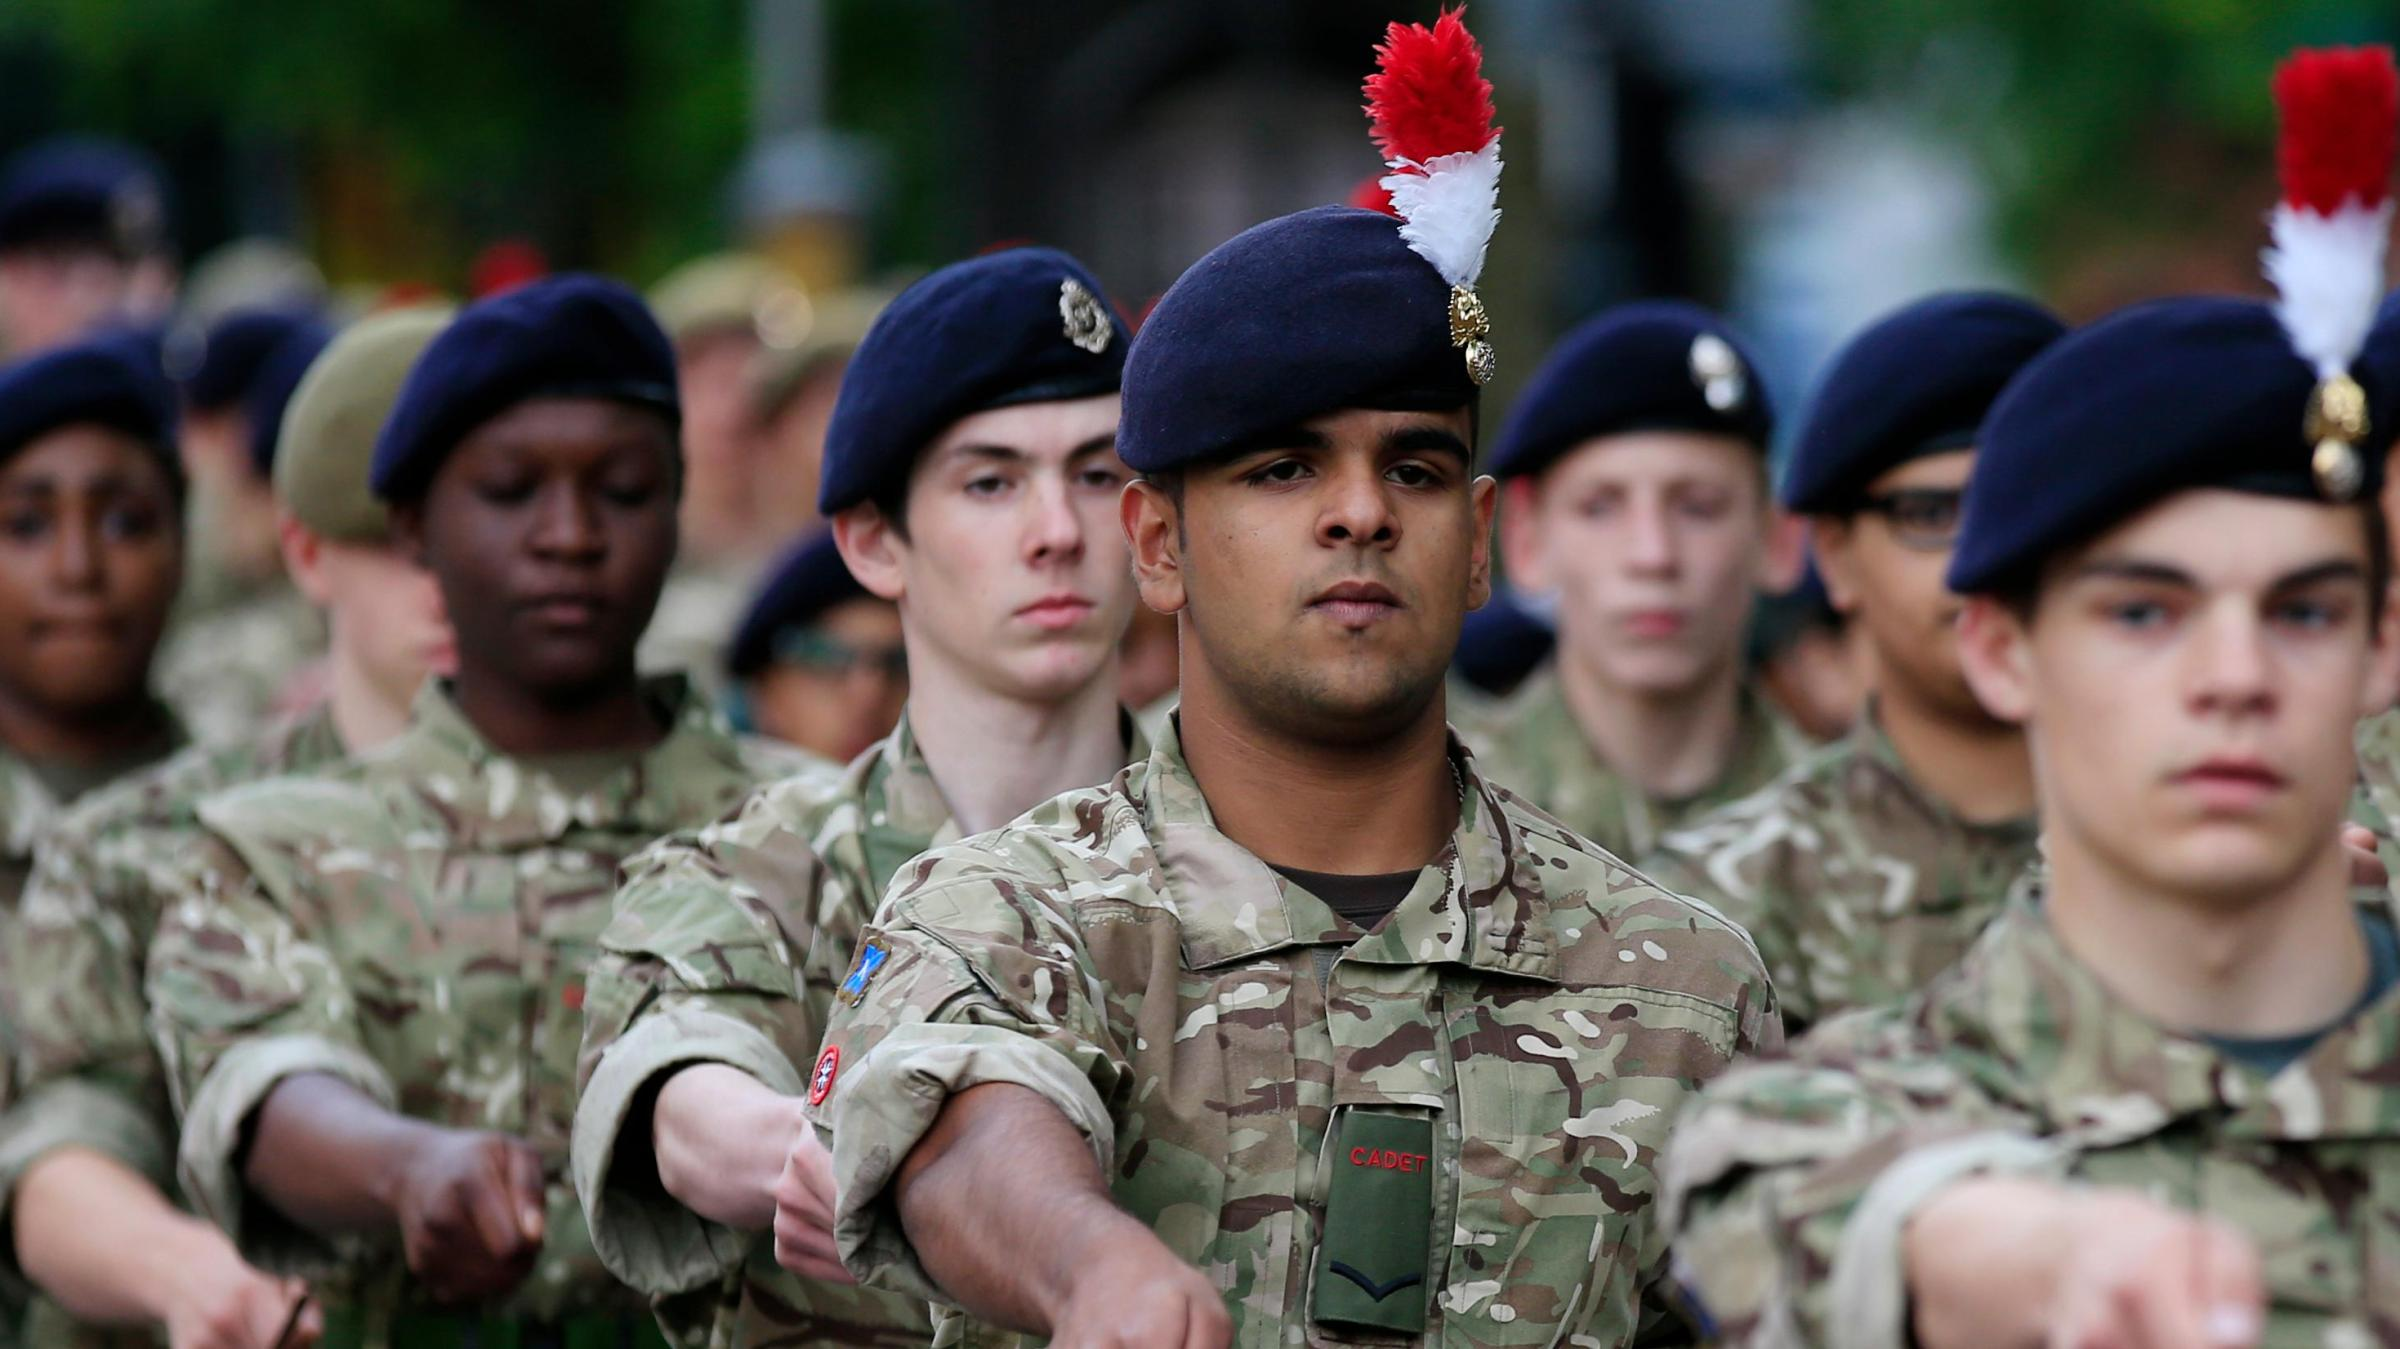 Islamic school starts an army cadet force